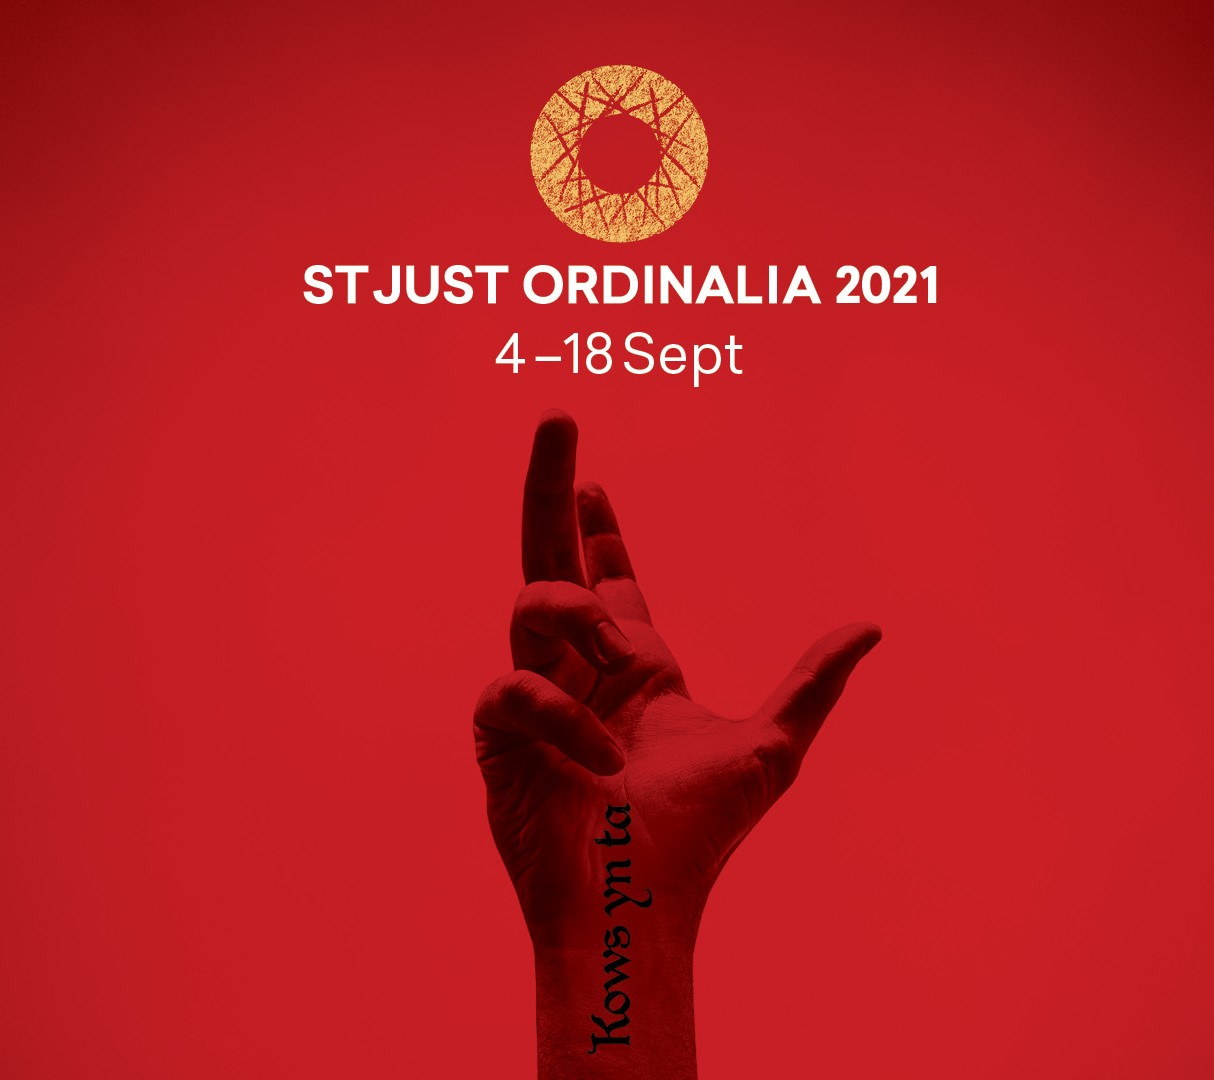 Poster showing hand and title St Just Ordinalia 2021.